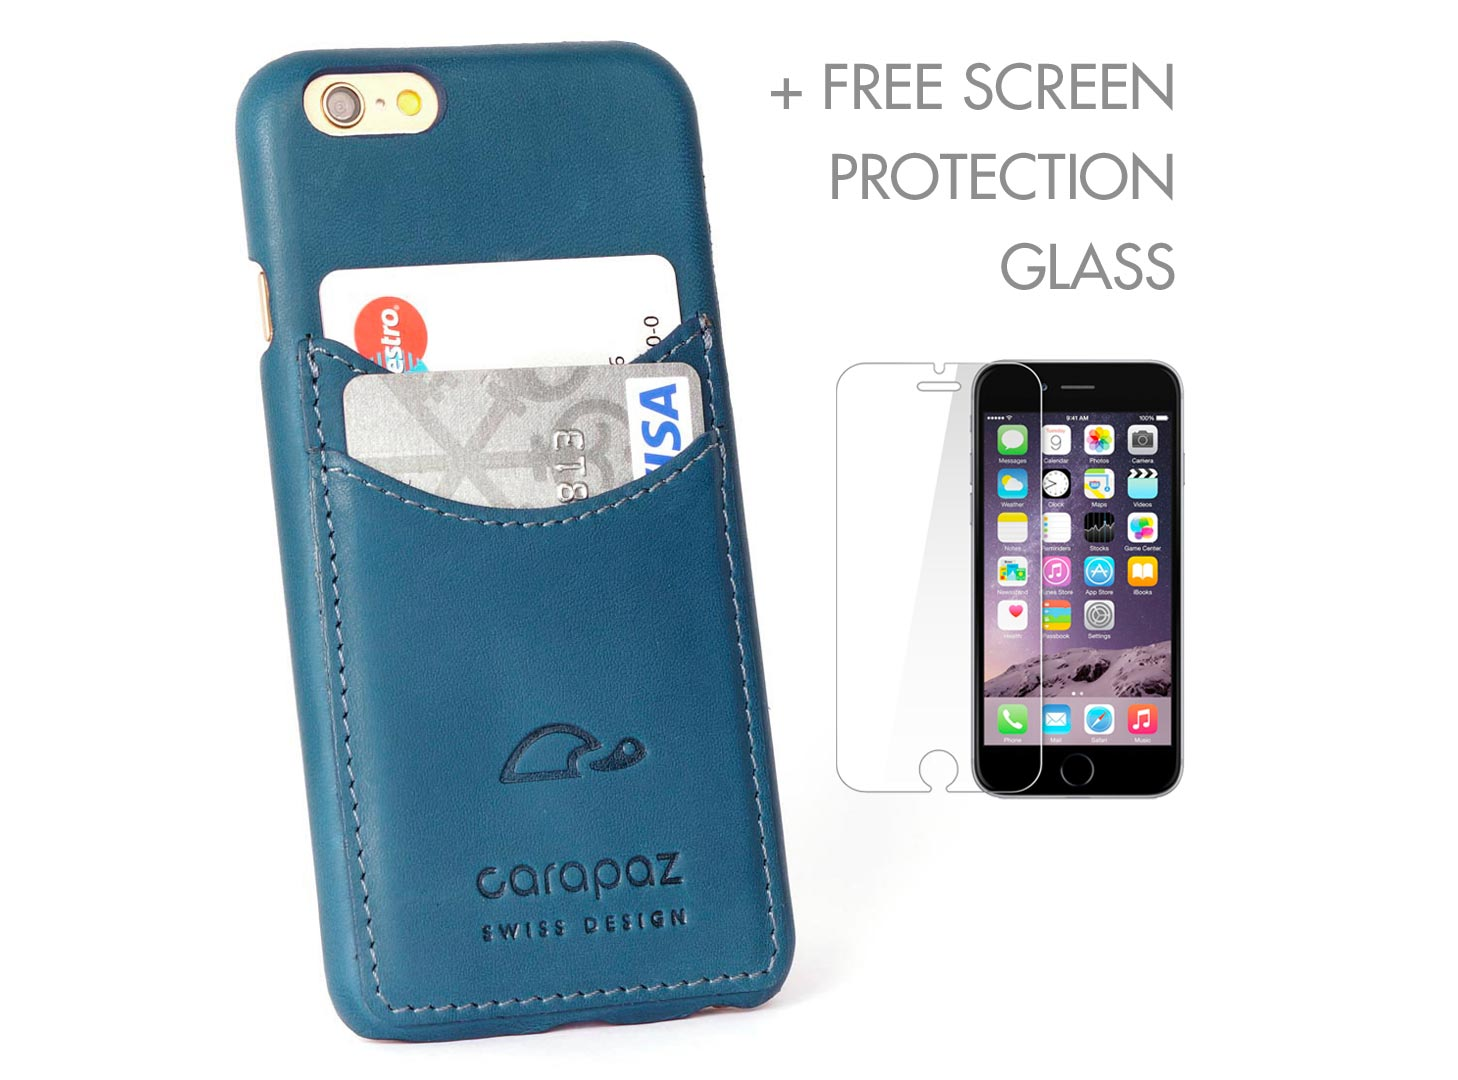 the latest 0b638 06033 iPHONE 6 / 6 PLUS SLIM CASE + SCREEN PROTECTION - BLUE